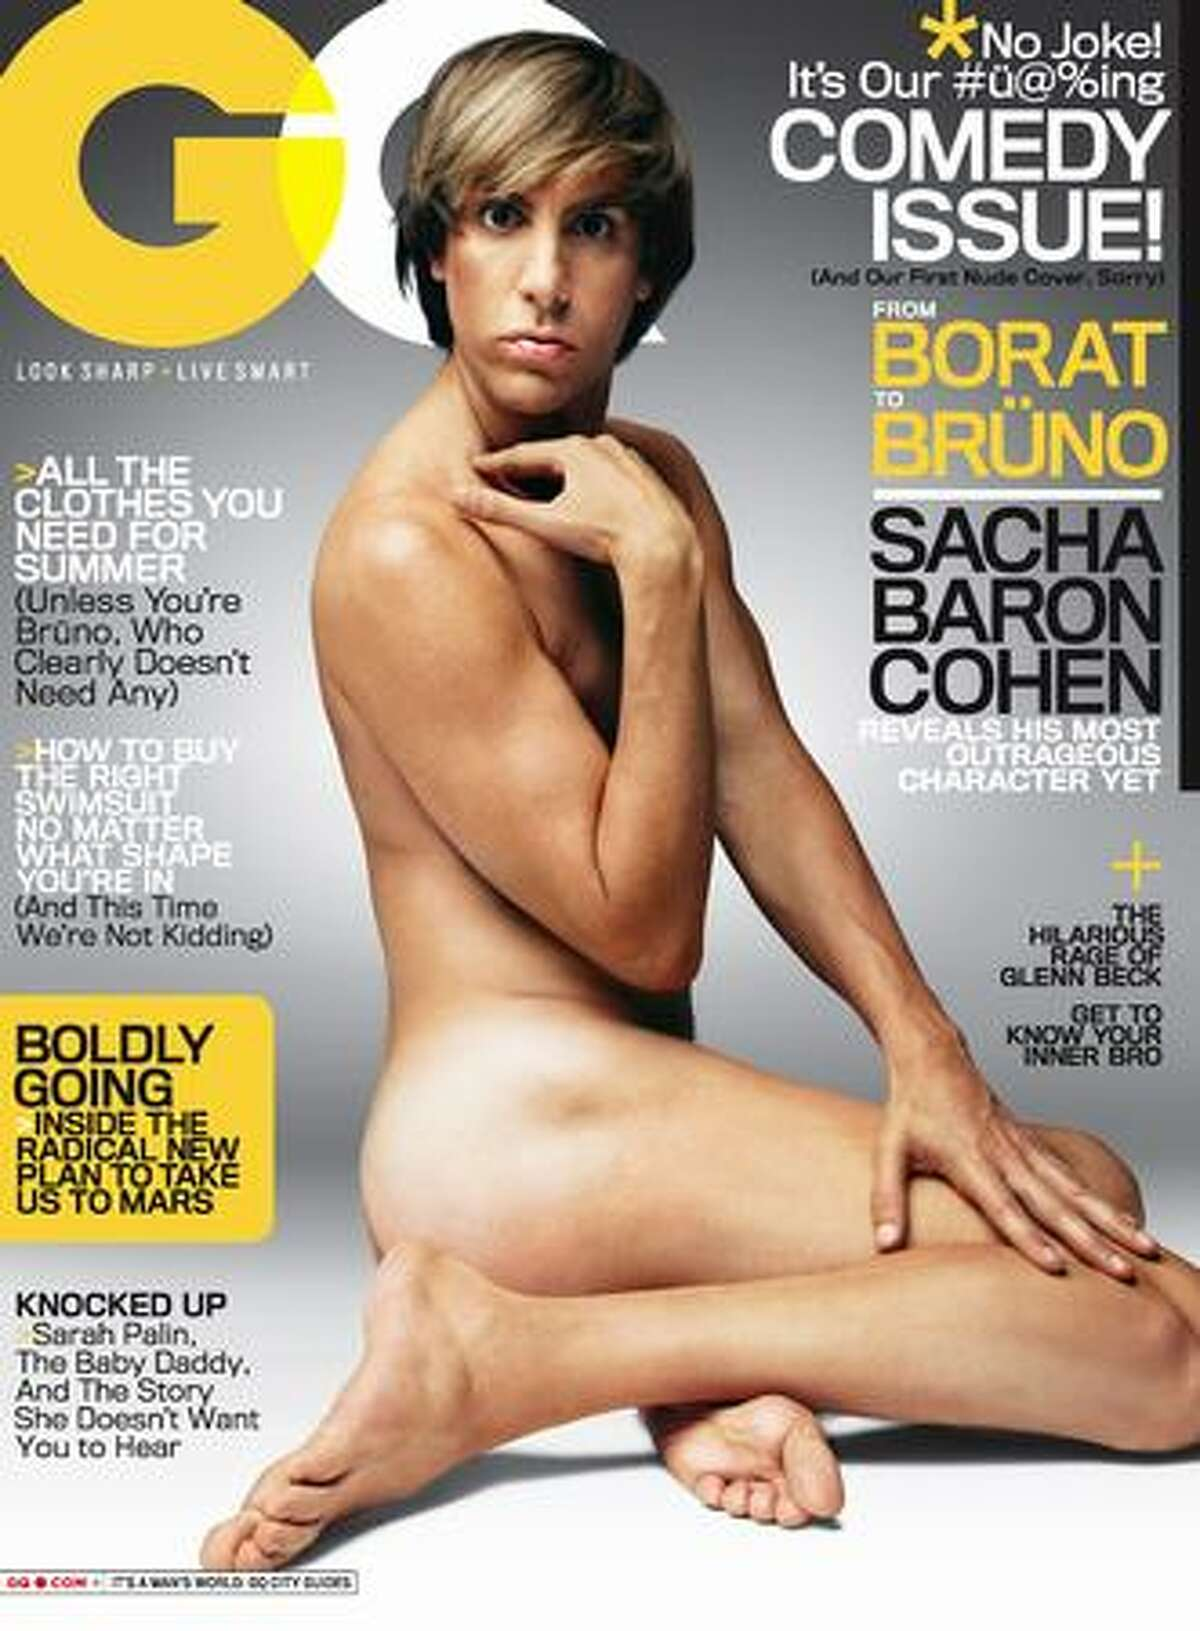 In this image released by GQ Magazine, Sacha Baron Cohen, as the character Bruno, is shown on the cover of